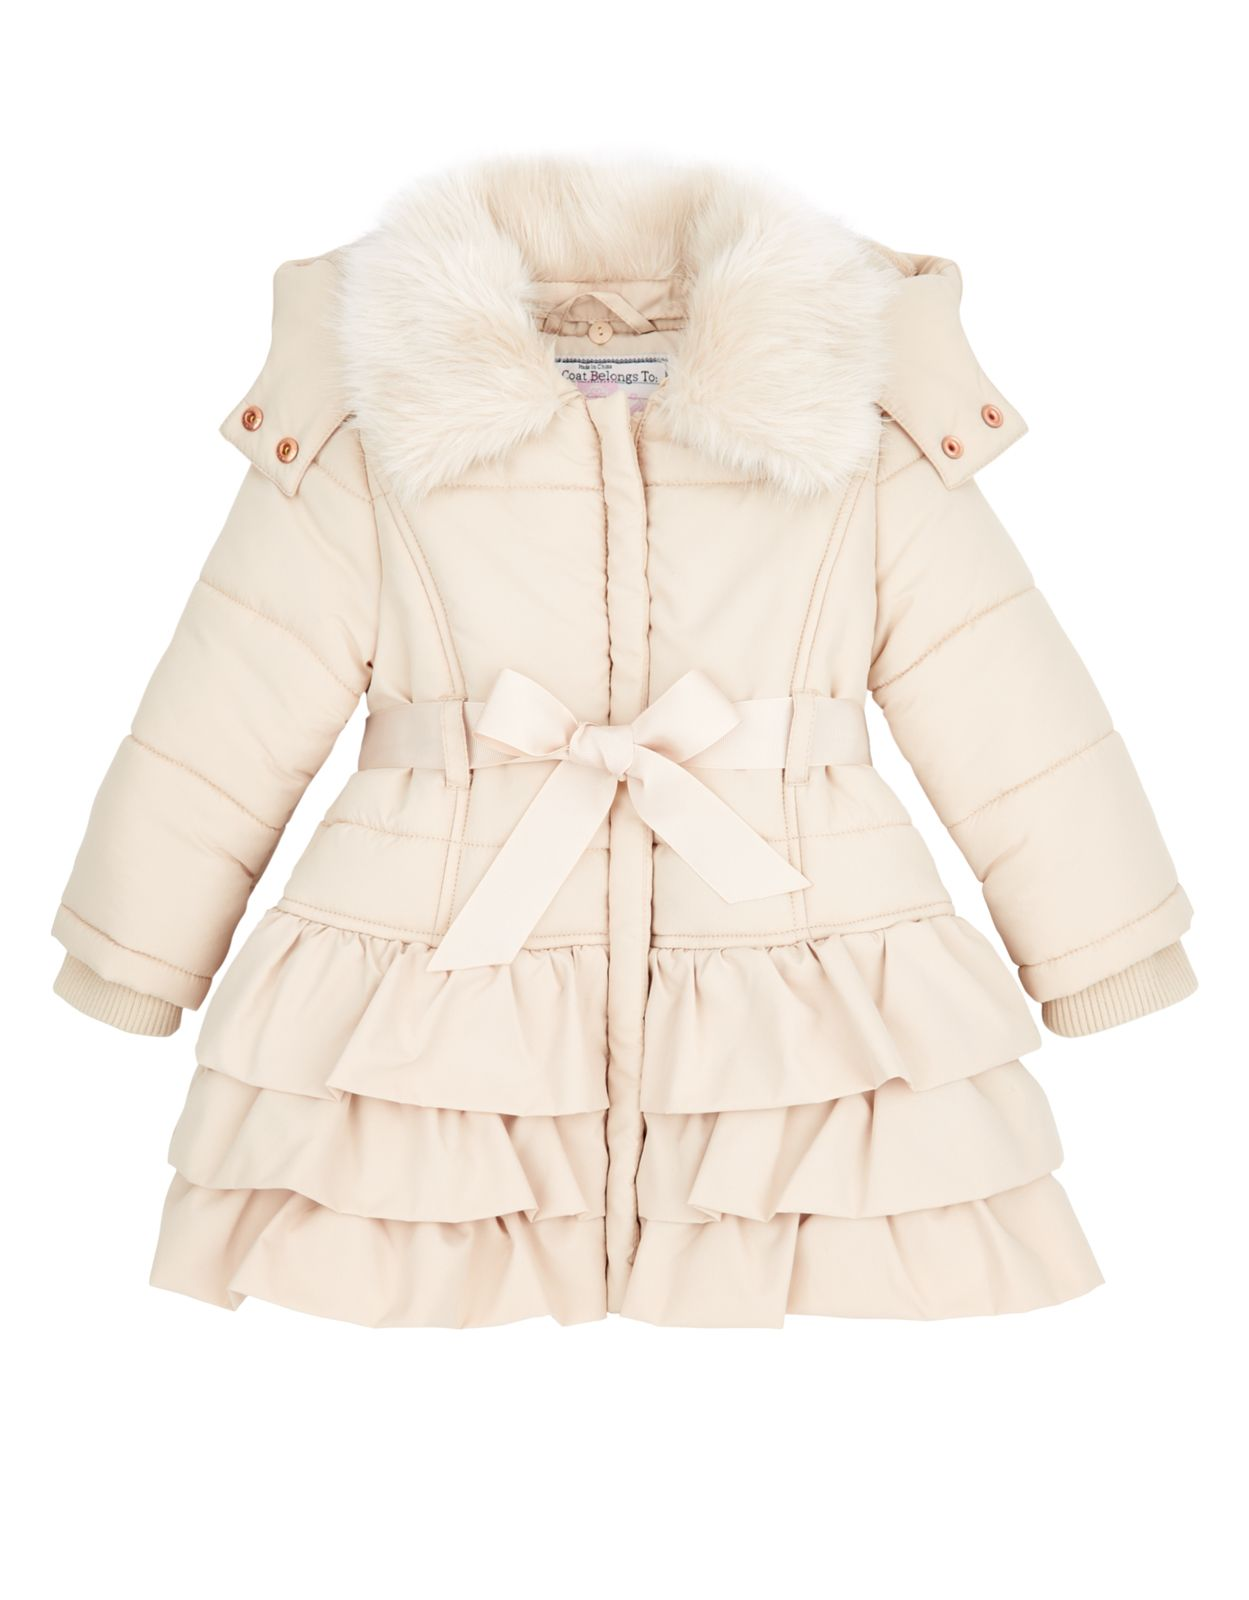 36216a629 Baby Coat, Future Daughter, Girls Coats, Kids Wear, Pregnancy Health,  Monsoon